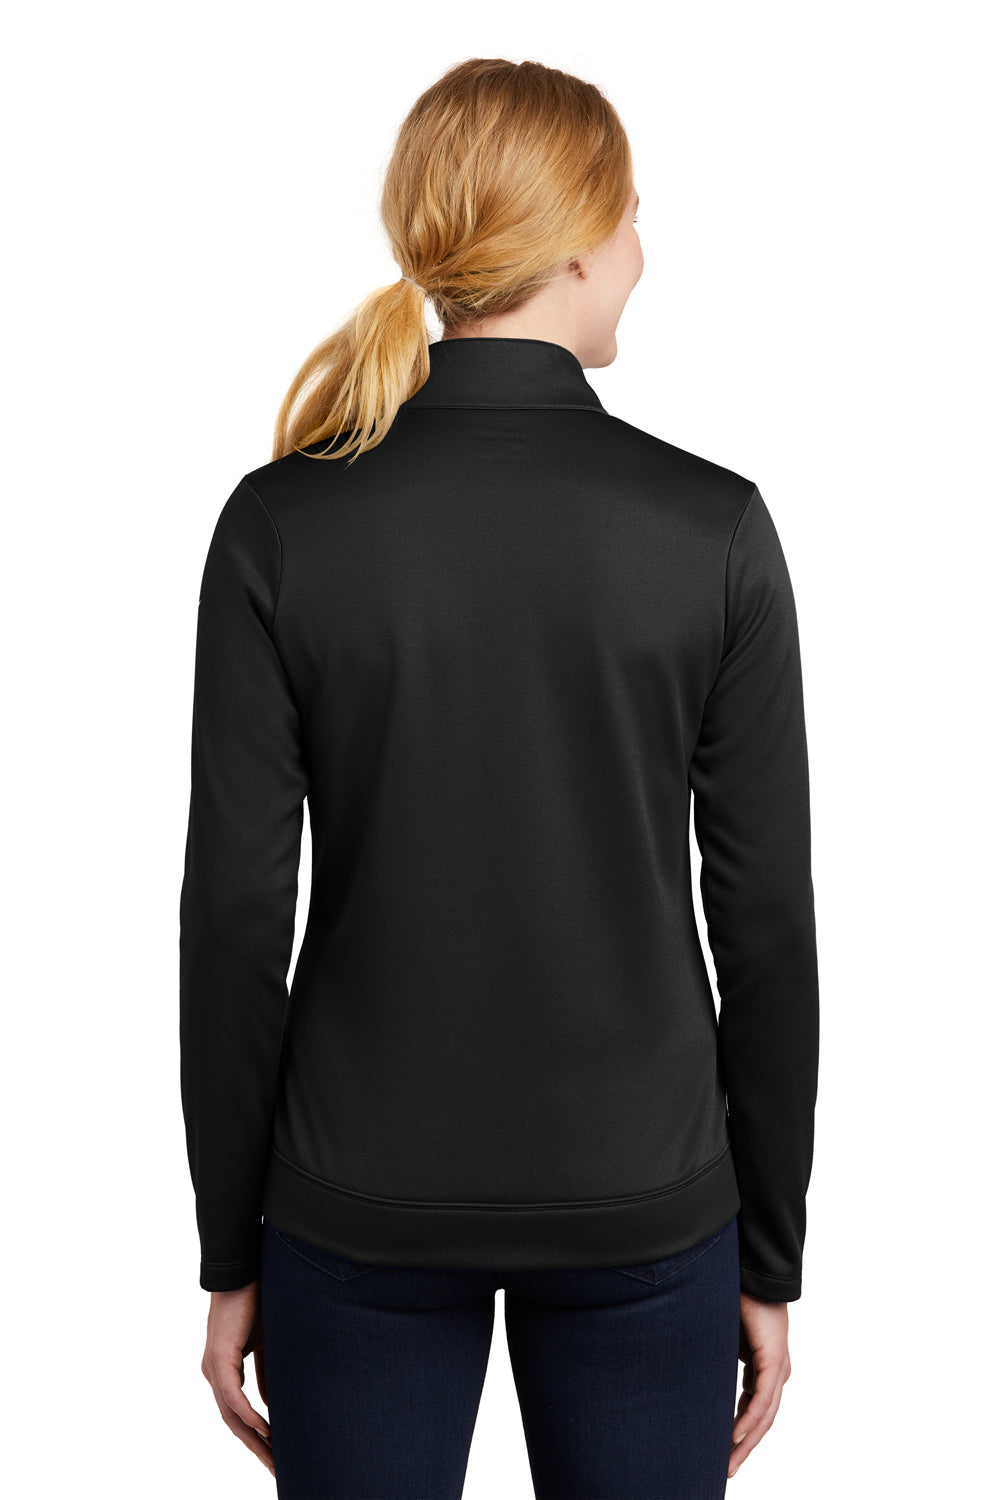 Nike NKAH6260 Womens Therma-Fit Moisture Wicking Fleece Full Zip Sweatshirt Black Back